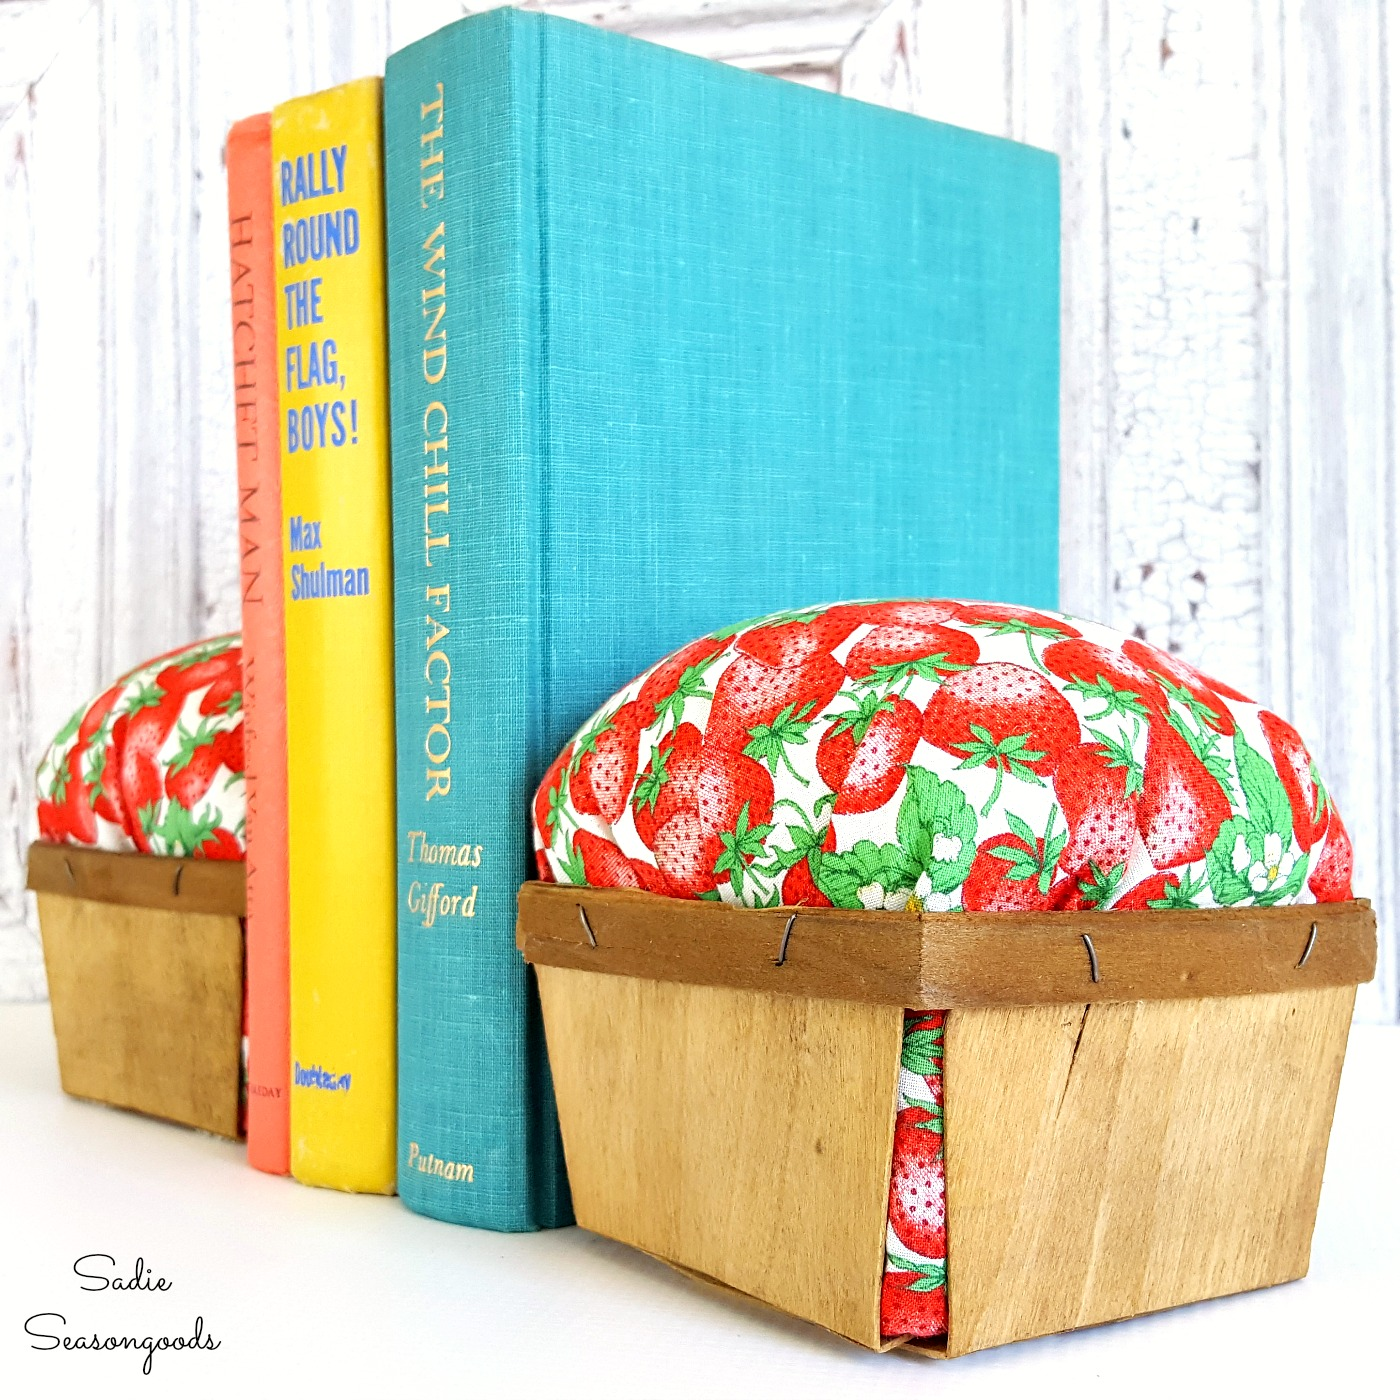 Berry basket bookends by Sadie Seasongoods, featured on Funky Junk Interiors